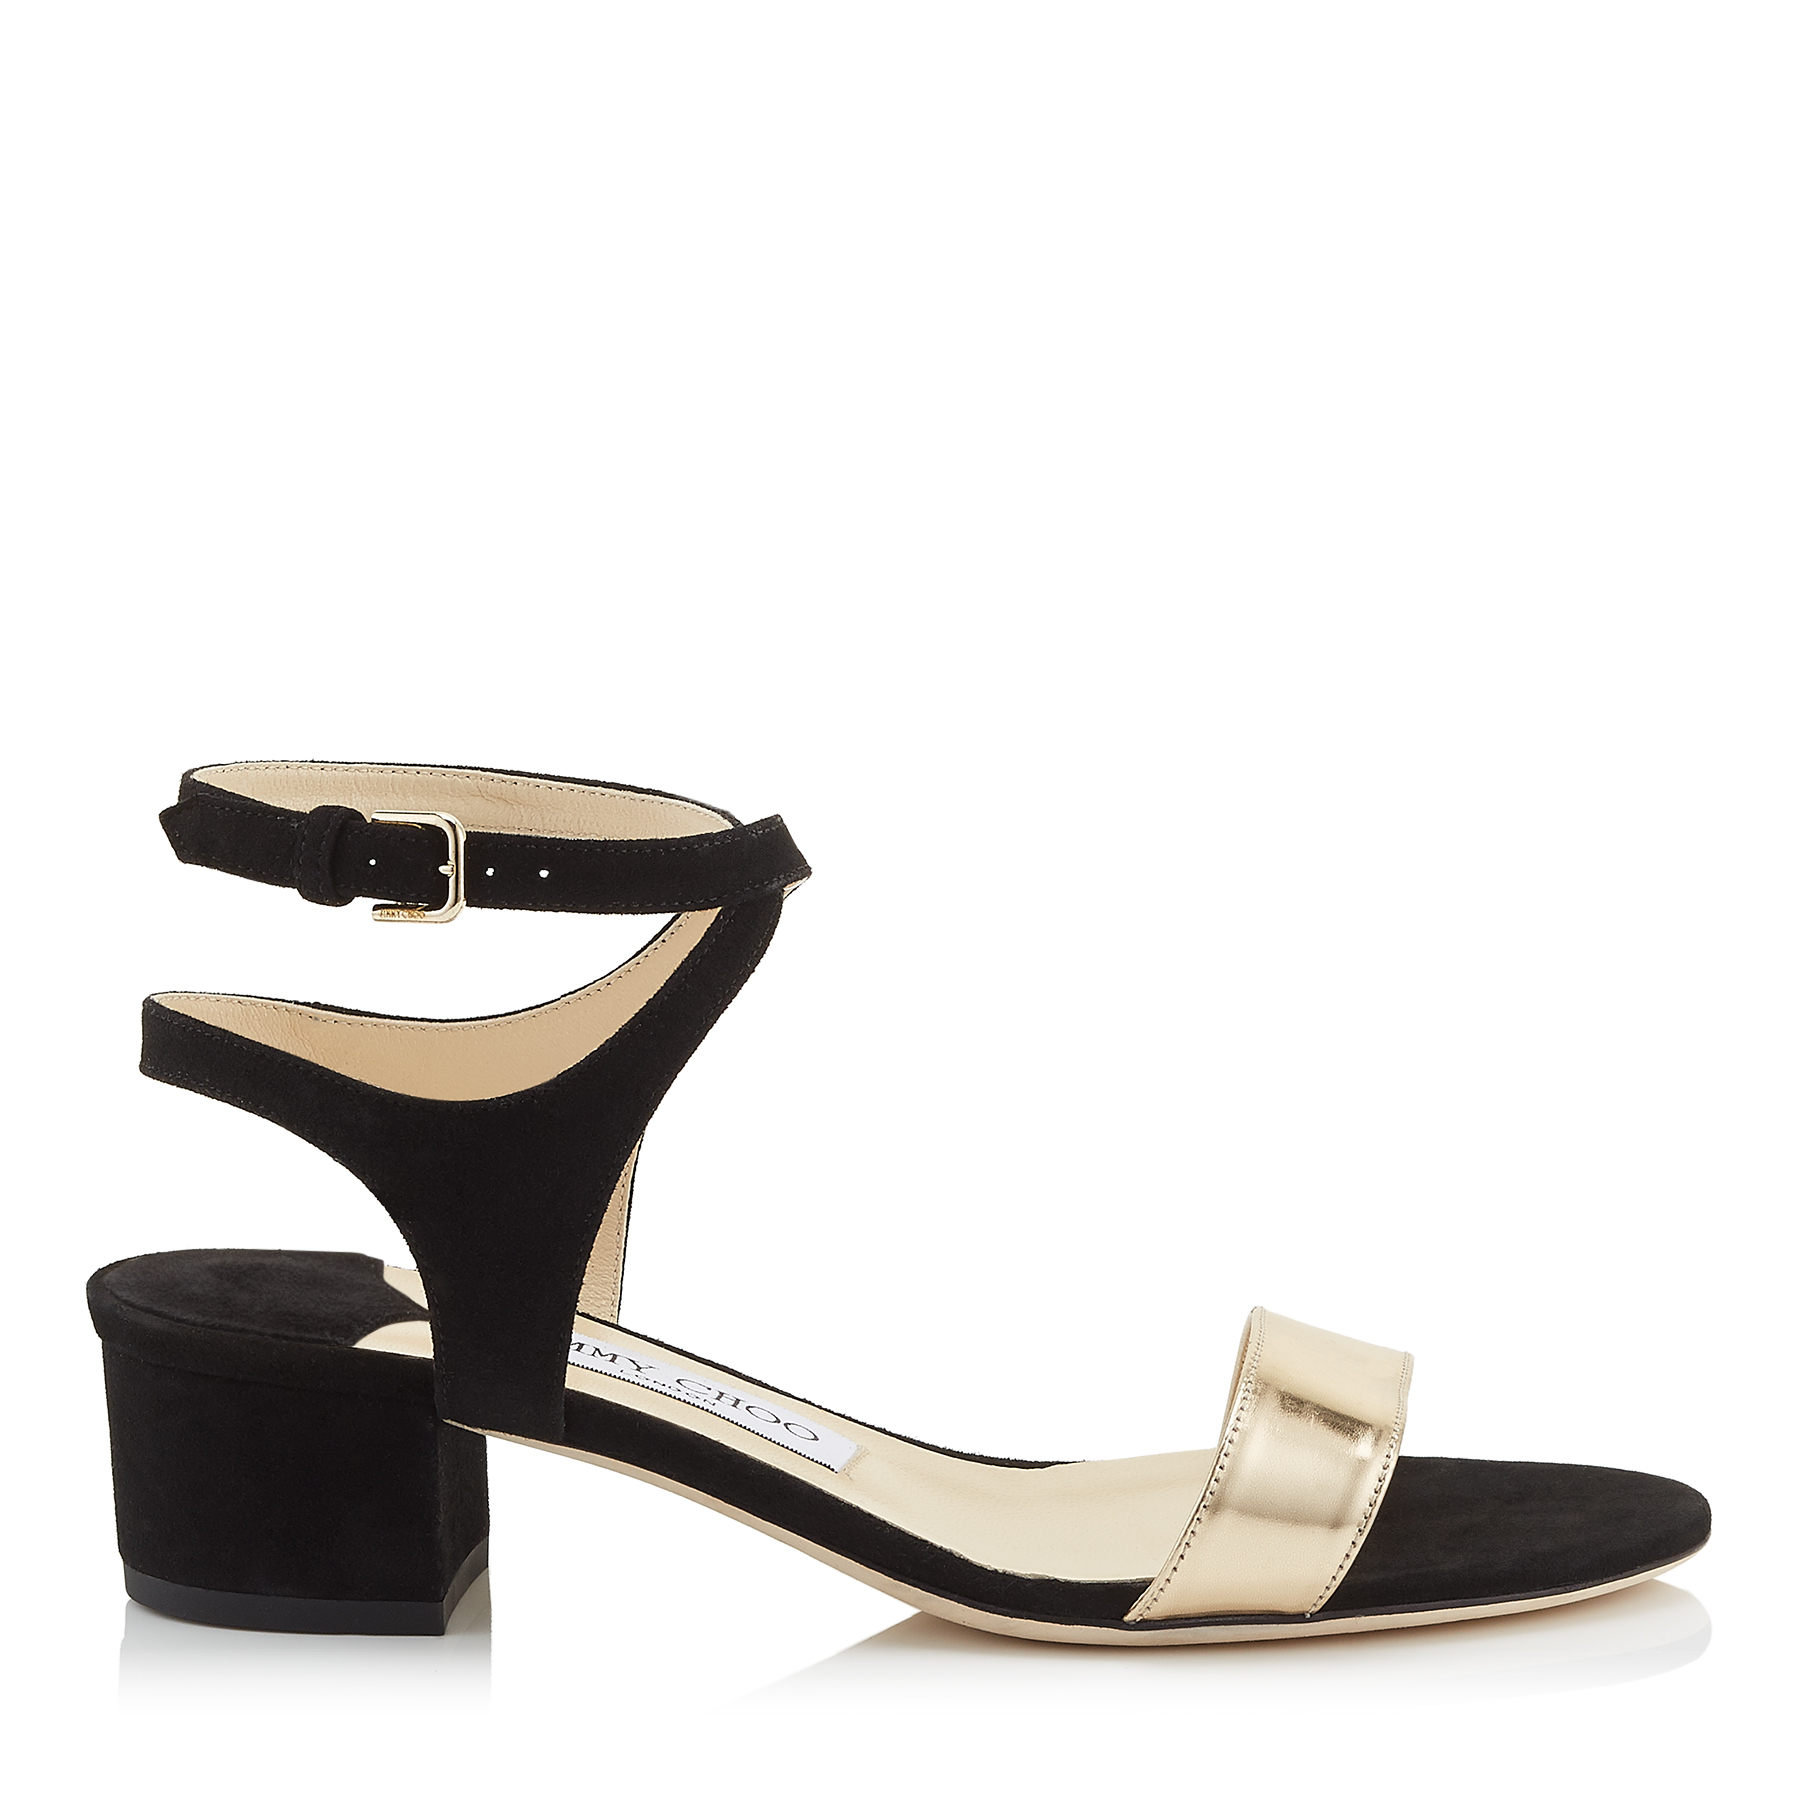 MARINE 35 Black Suede and Dore Mirror Leather Sandals by Jimmy Choo